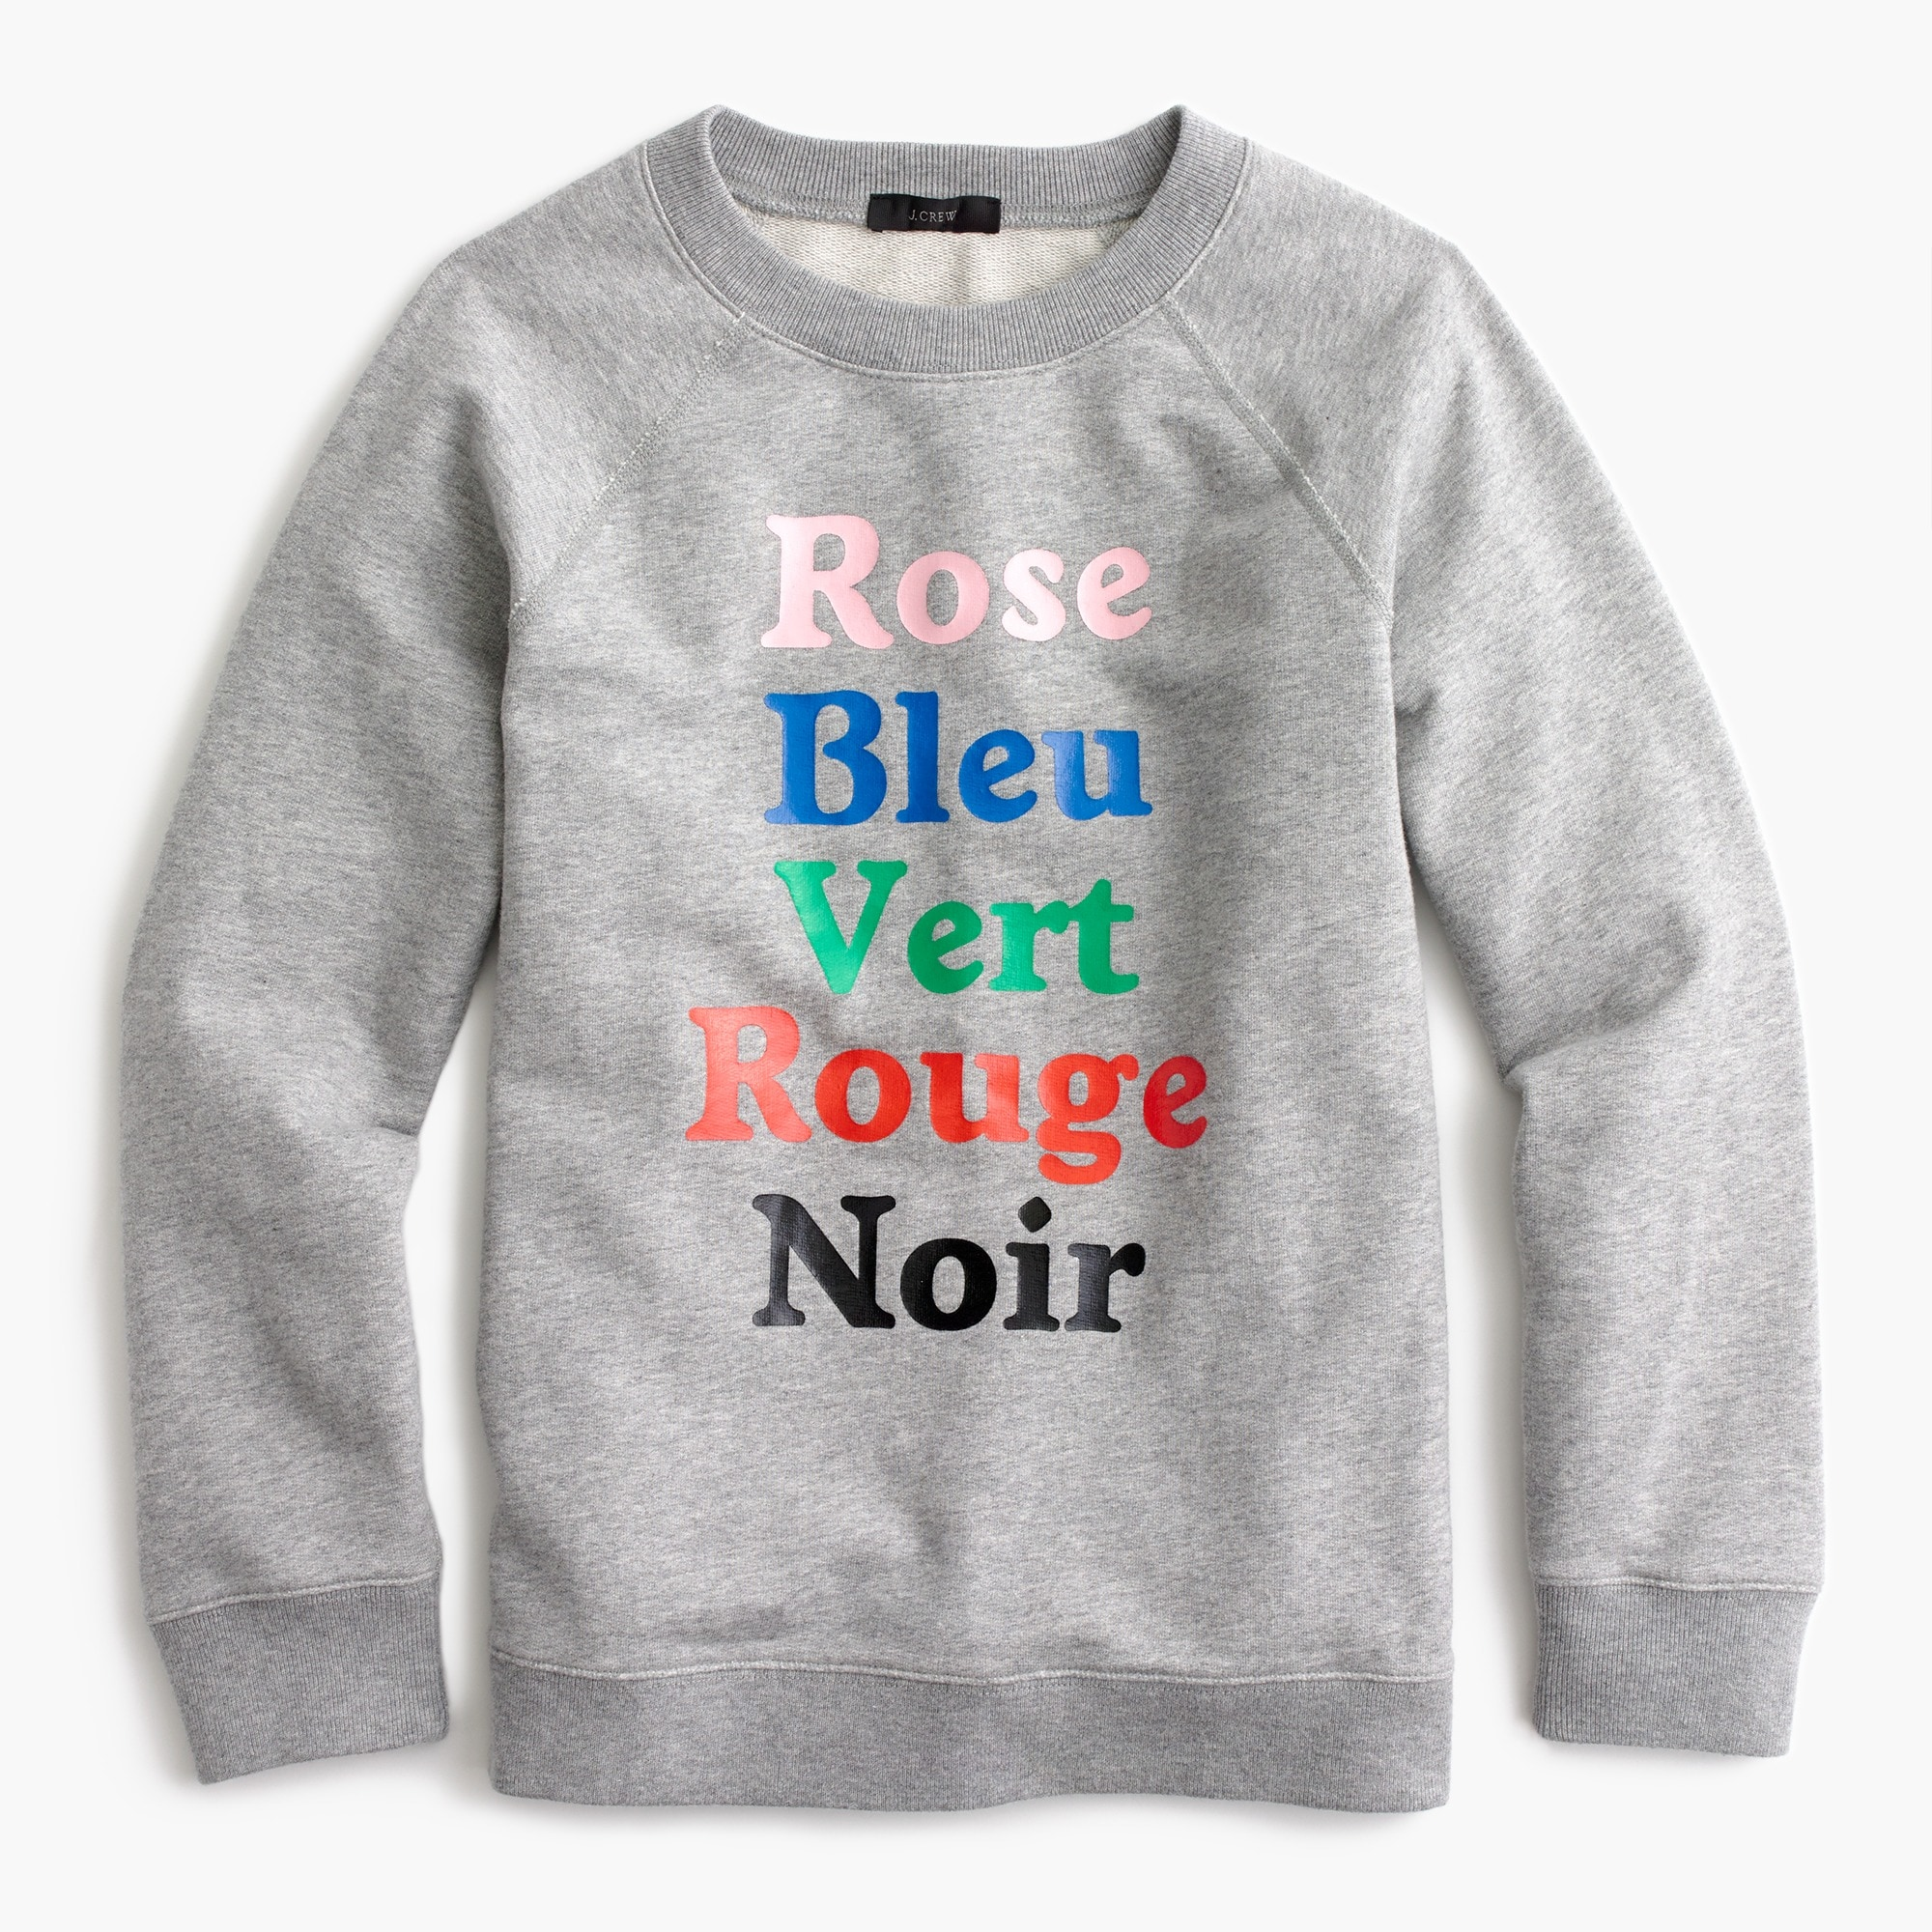 French colors sweatshirt